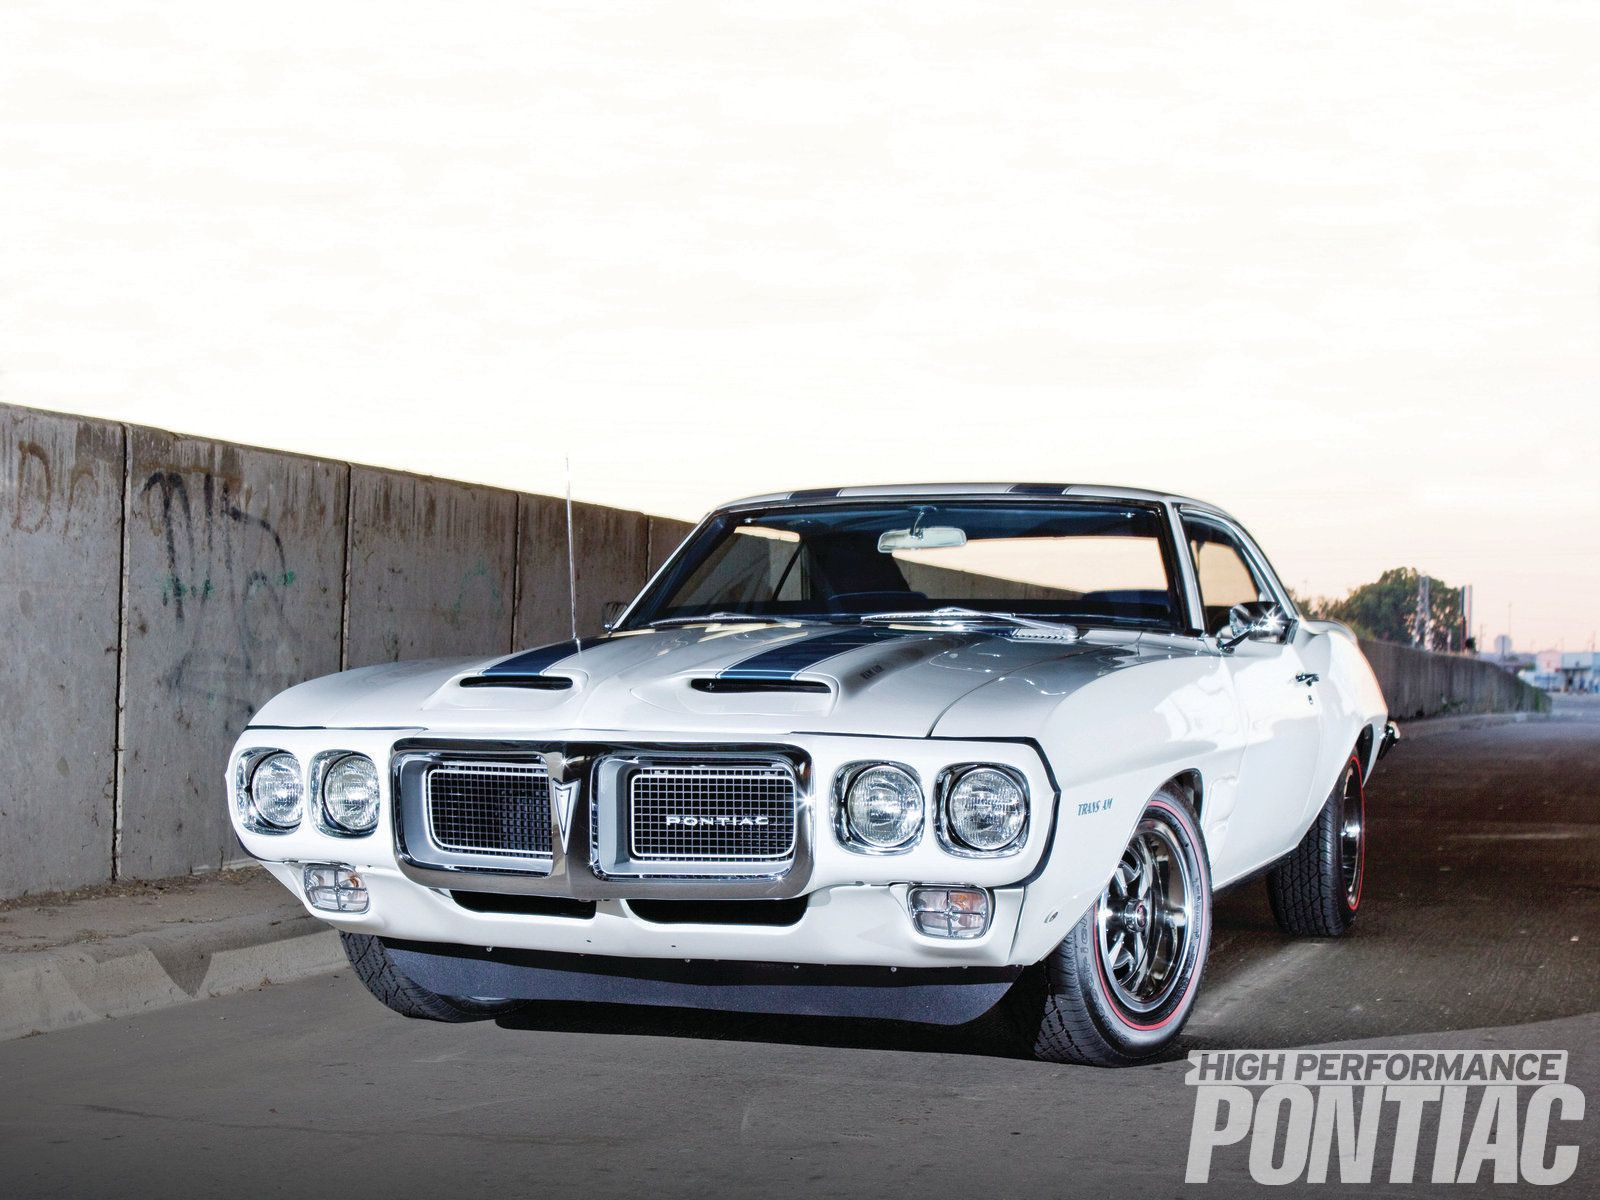 Badass trans am rat rods hot rods muscle cars pinterest rats and cars